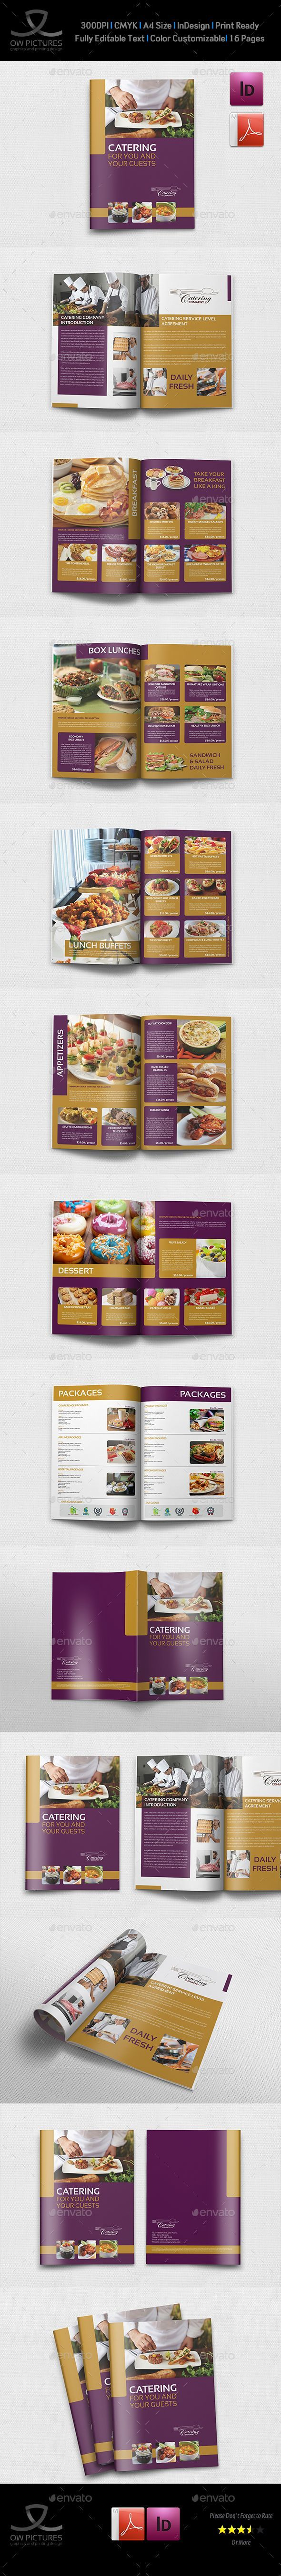 Food infographic  Catering Brochure Template  16 Pages   InDesign Template #minimalistic